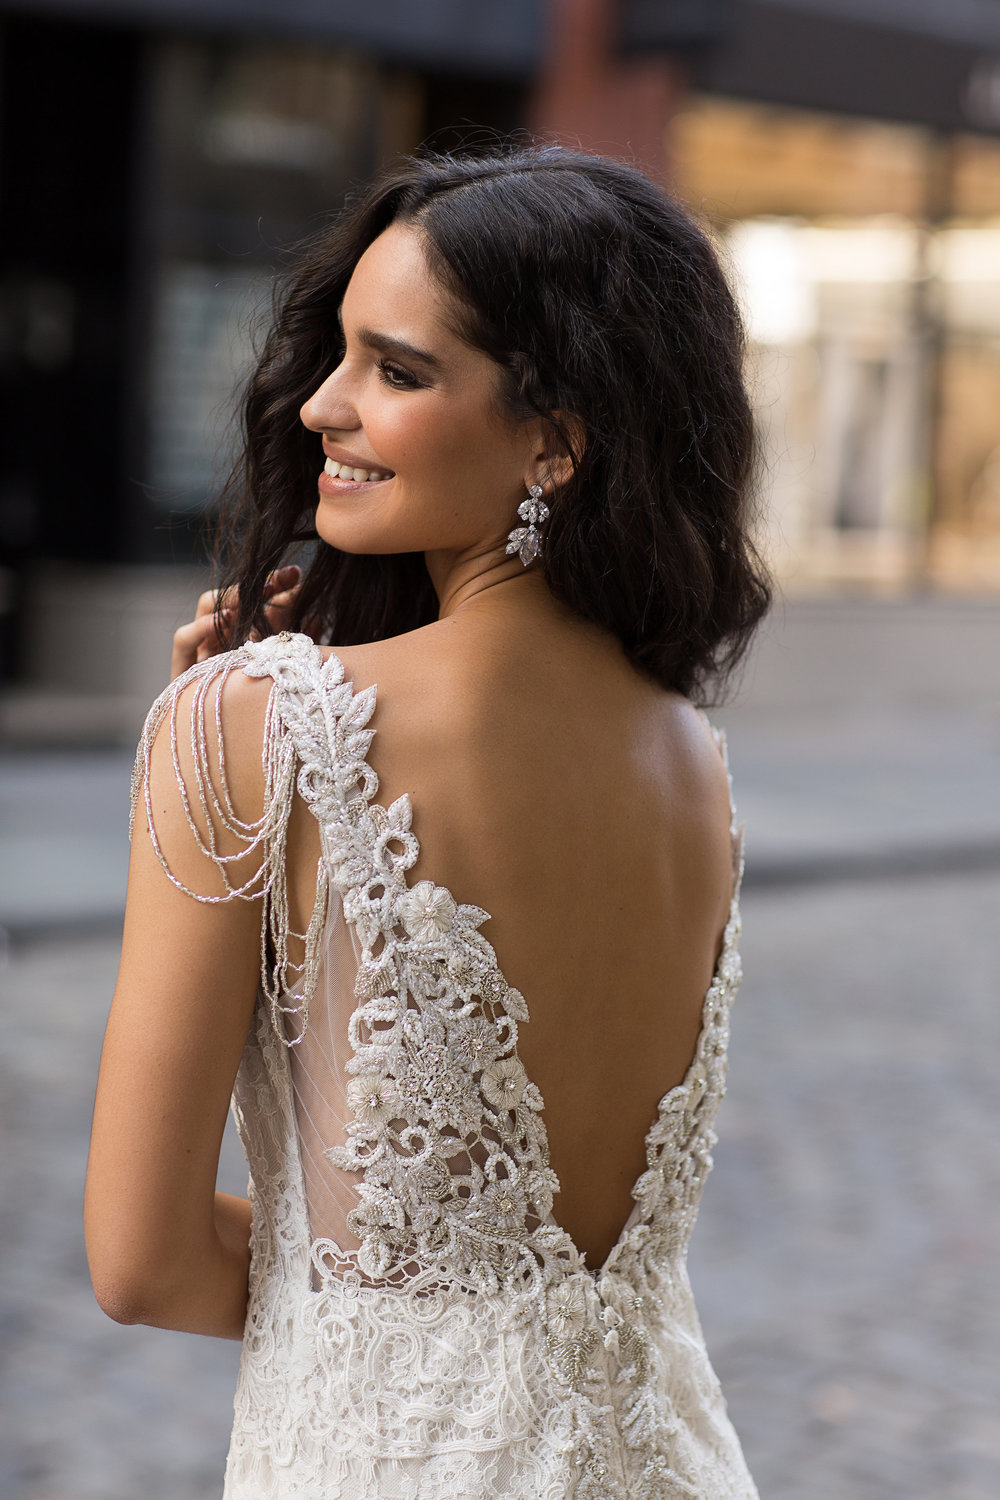 Anna Campbell Bridal | Saasha Embellished Wedding Dress | Modern lace wedding gown with beaded low back and shoulder details